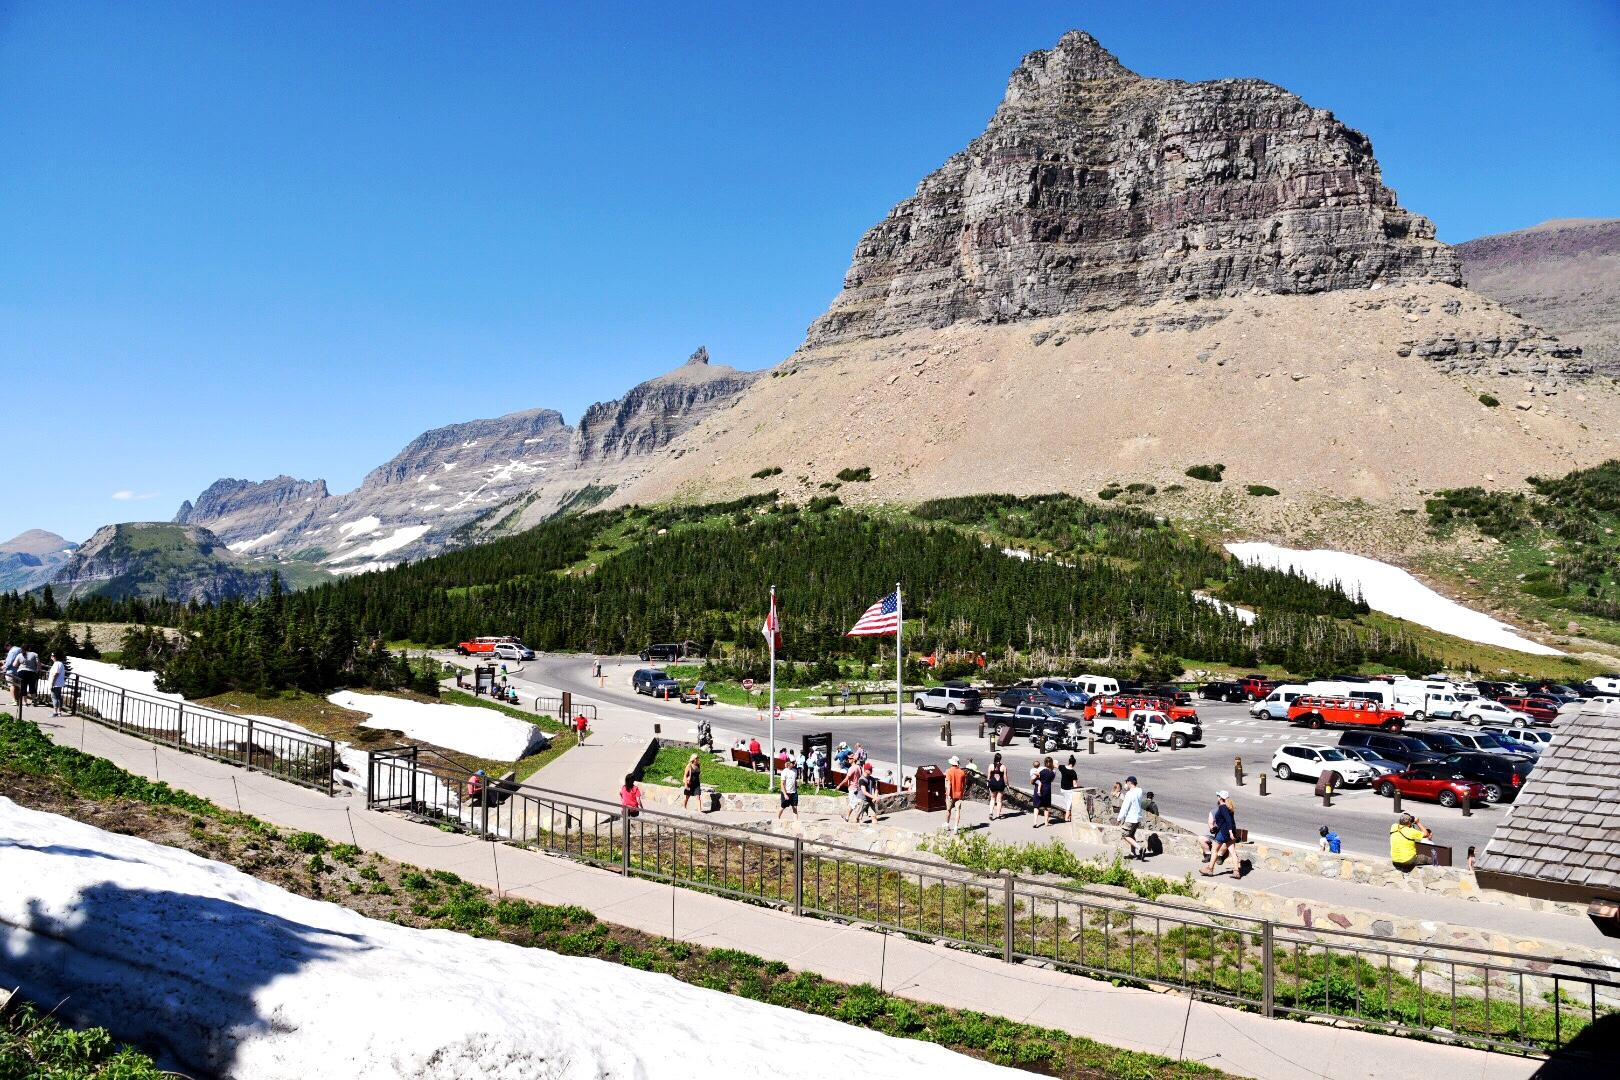 In mid-July, many of Logan Pass's trails were still snow covered. Logan Pass is the highest elevation  reachable by car in the park at 6,646 ft  and hosts a large visitor center. (Image: Rebecca Mongrain/Seattle Refined)